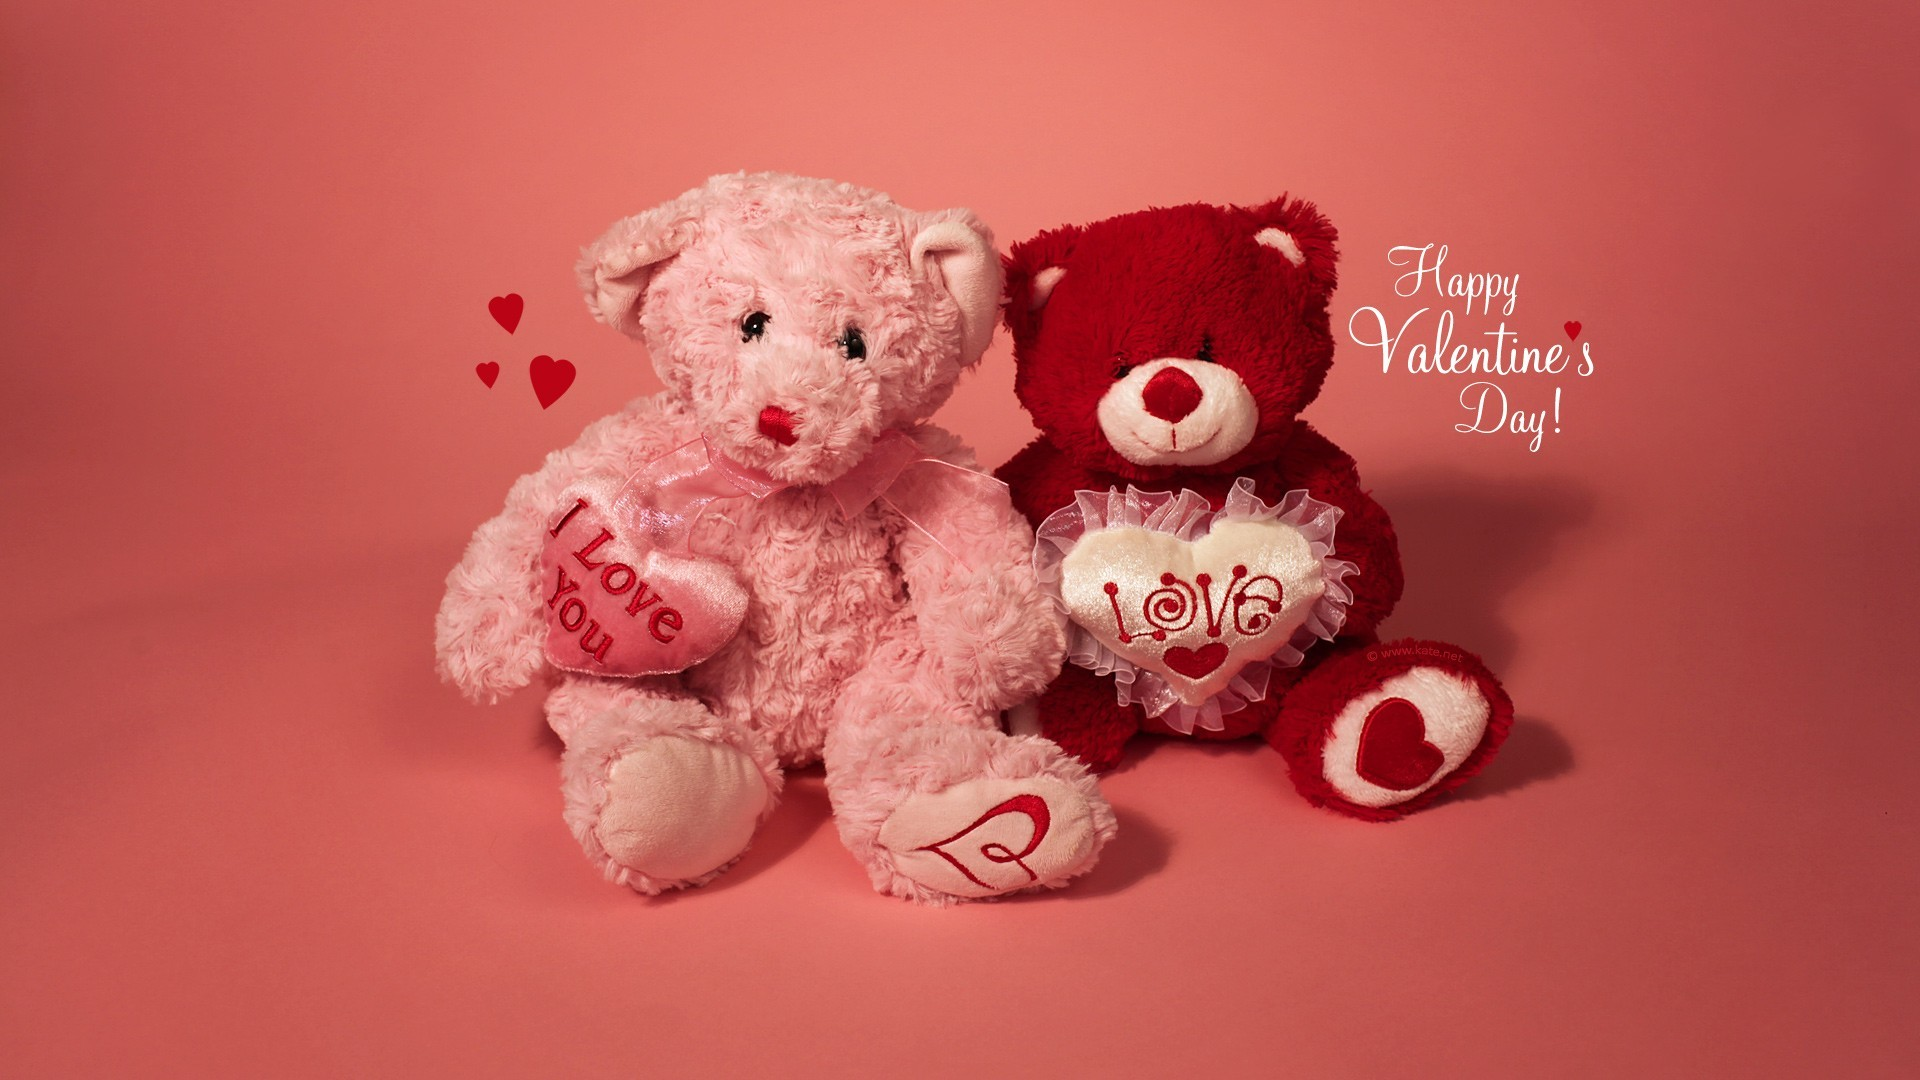 Happy Valentines Day Cute Pictures HD Wallpaper of Love .